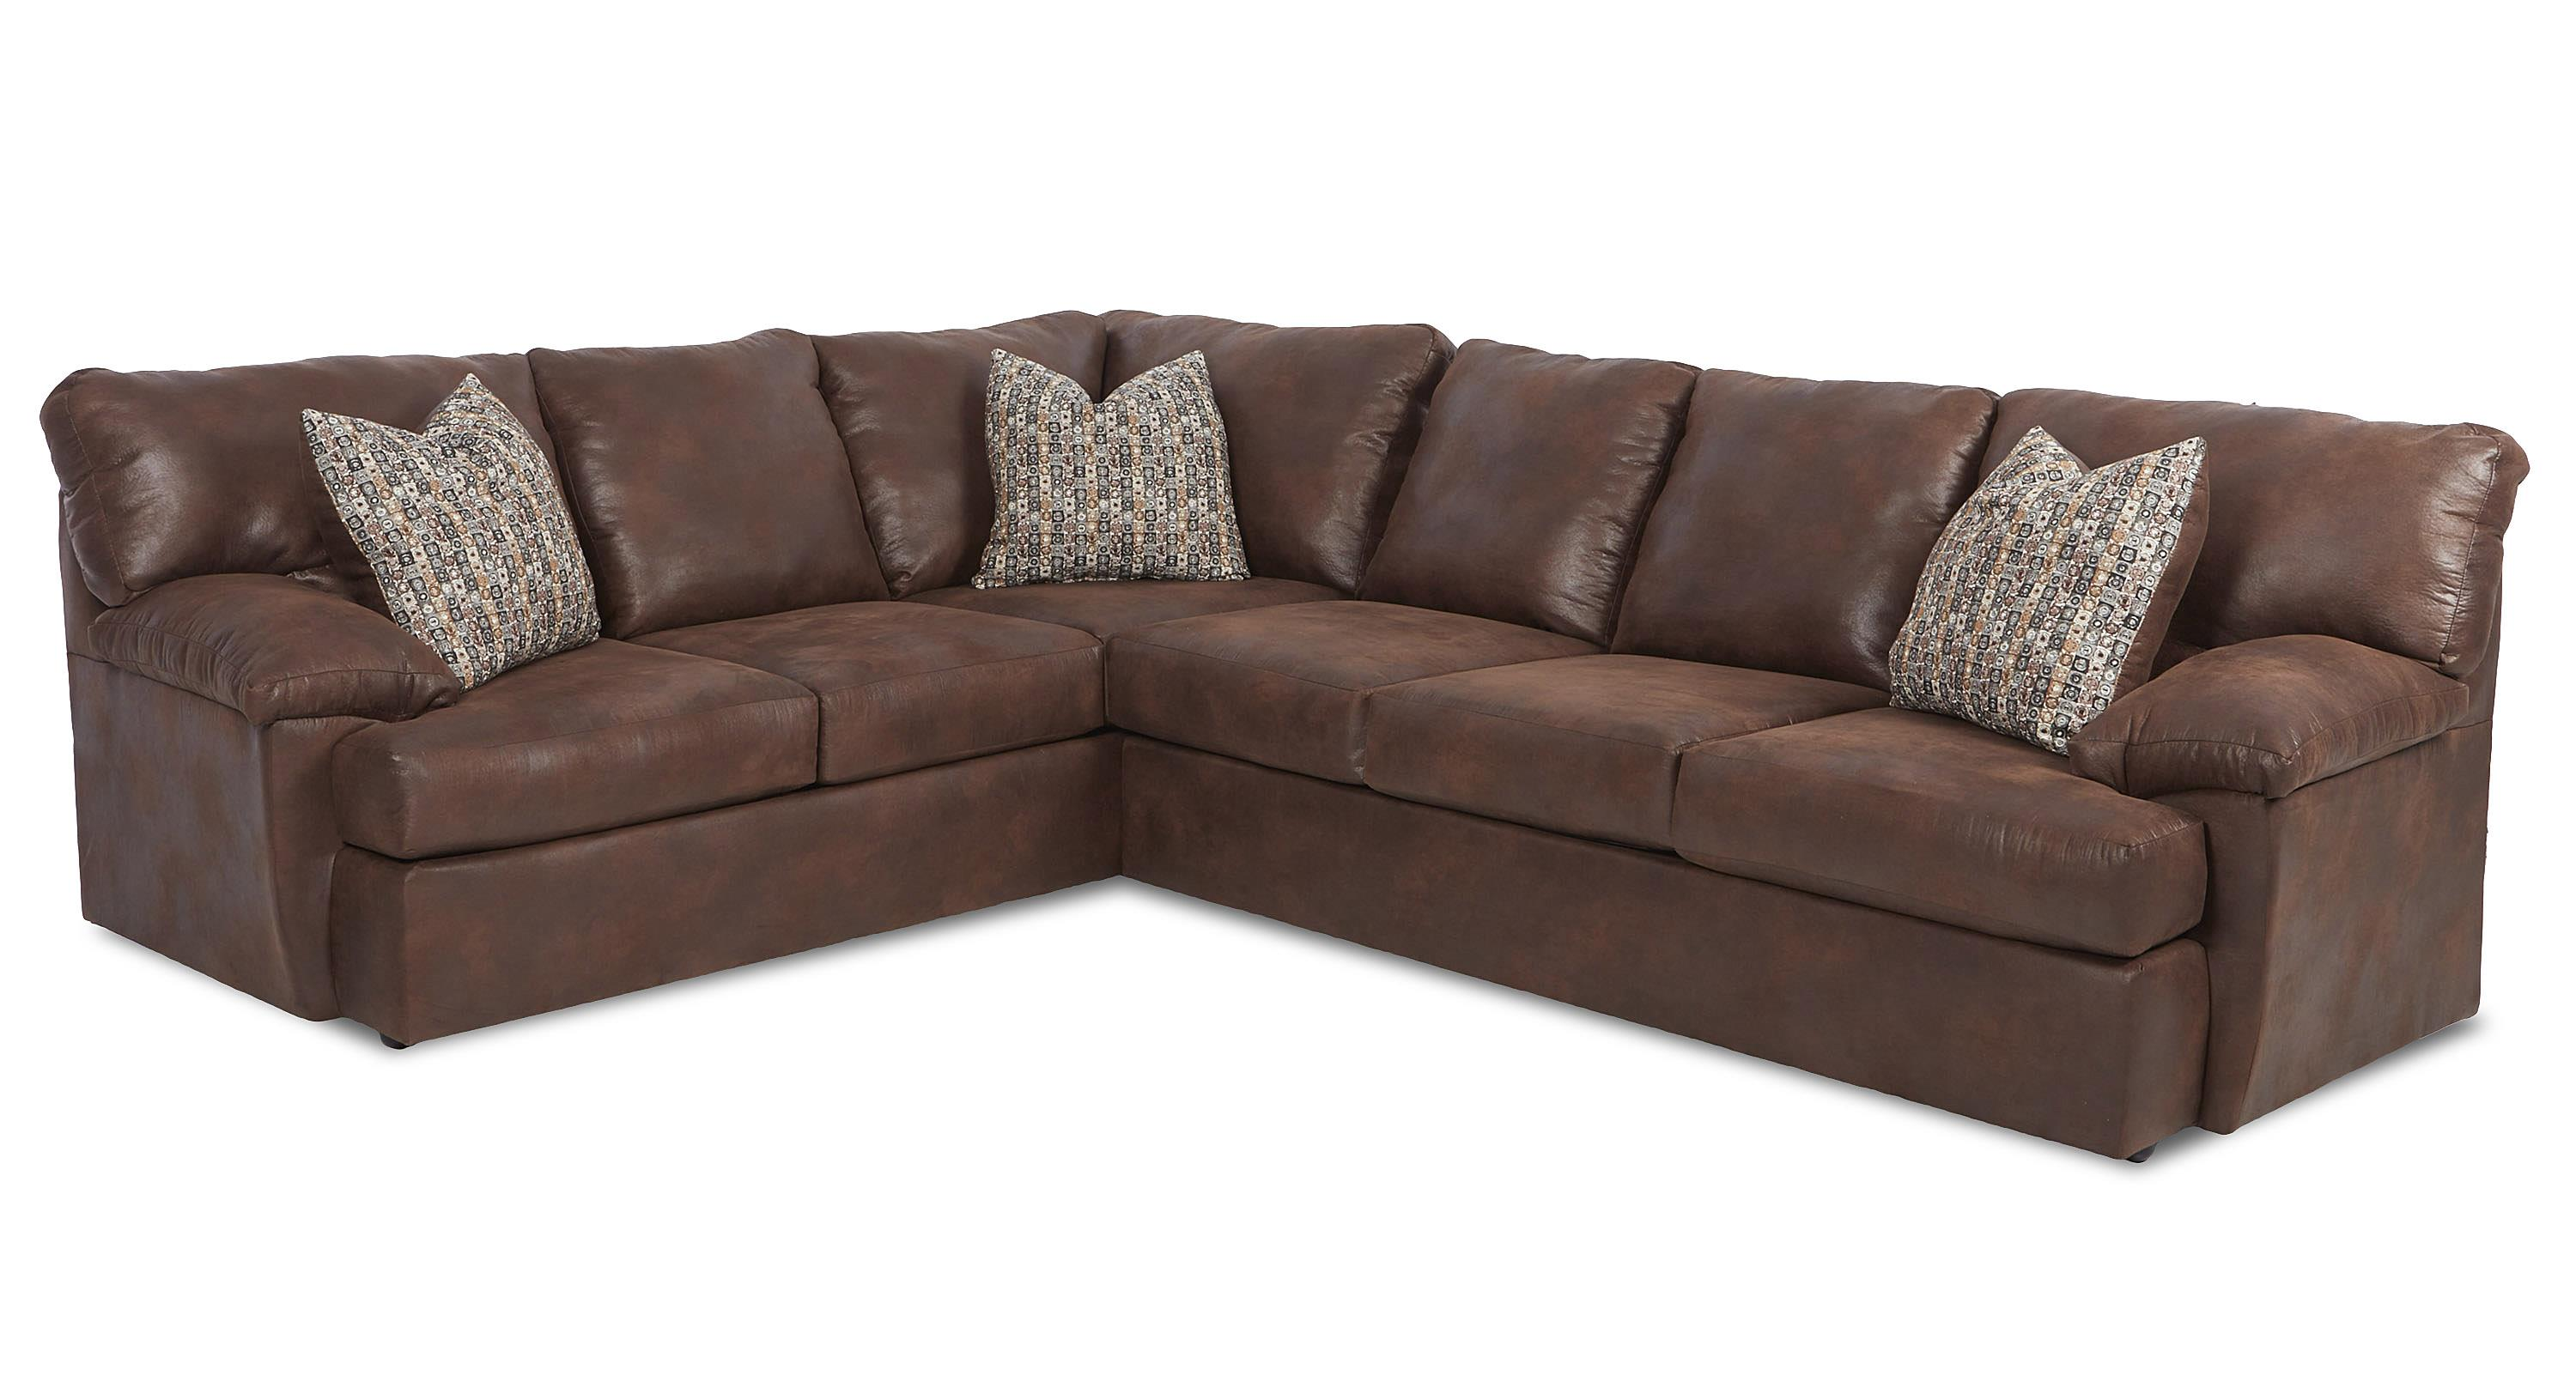 Casual sectional sofa by klaussner wolf and gardiner for Sectional sofas wolf furniture